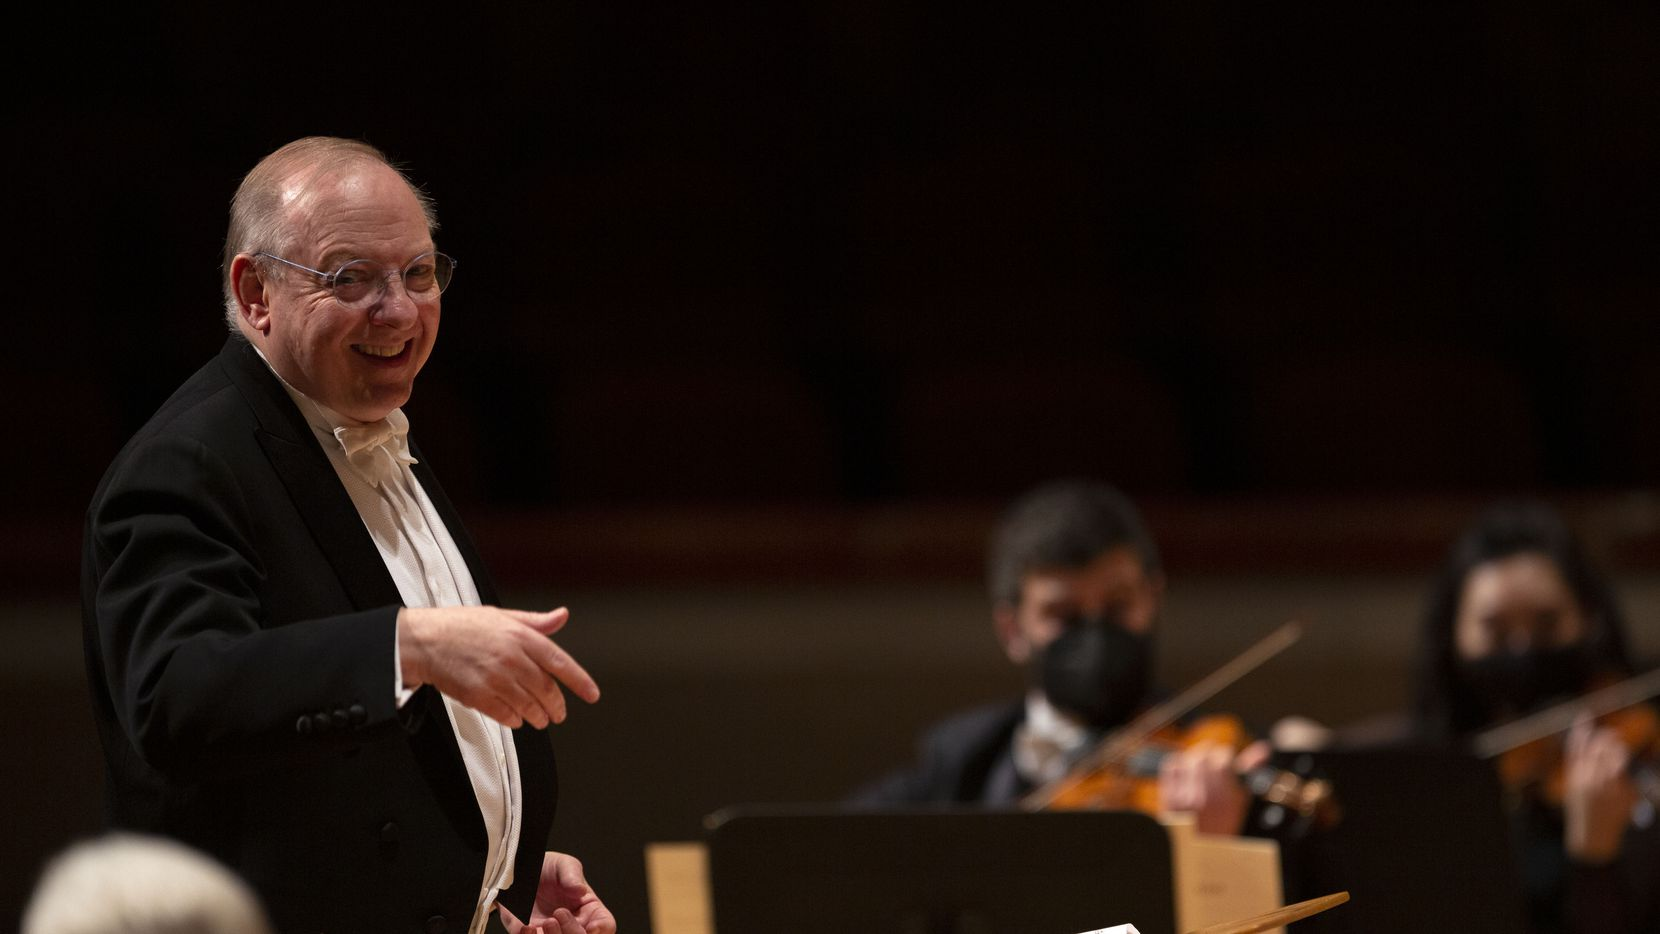 Guest conductor Nicholas McGegan leads the Dallas Symphony Orchestra at Meyerson Symphony Center on May 20.